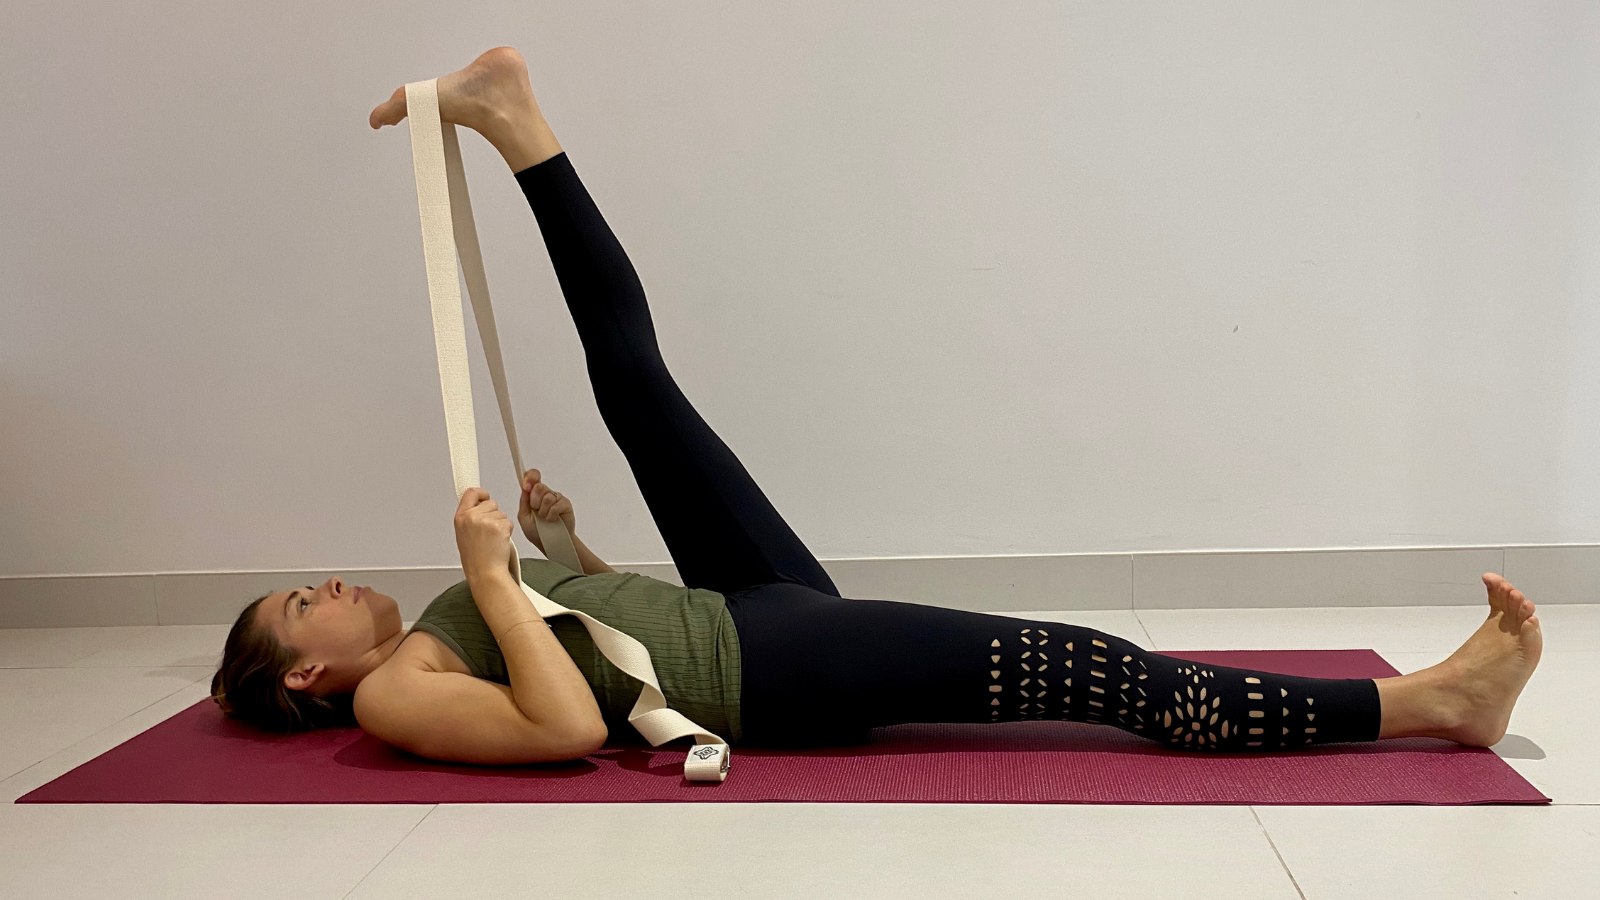 Yoga beginner tips to lengthen the hamstrings and relieve back pain in Reclined Big Toe Pose (Supta Padangusthasana)